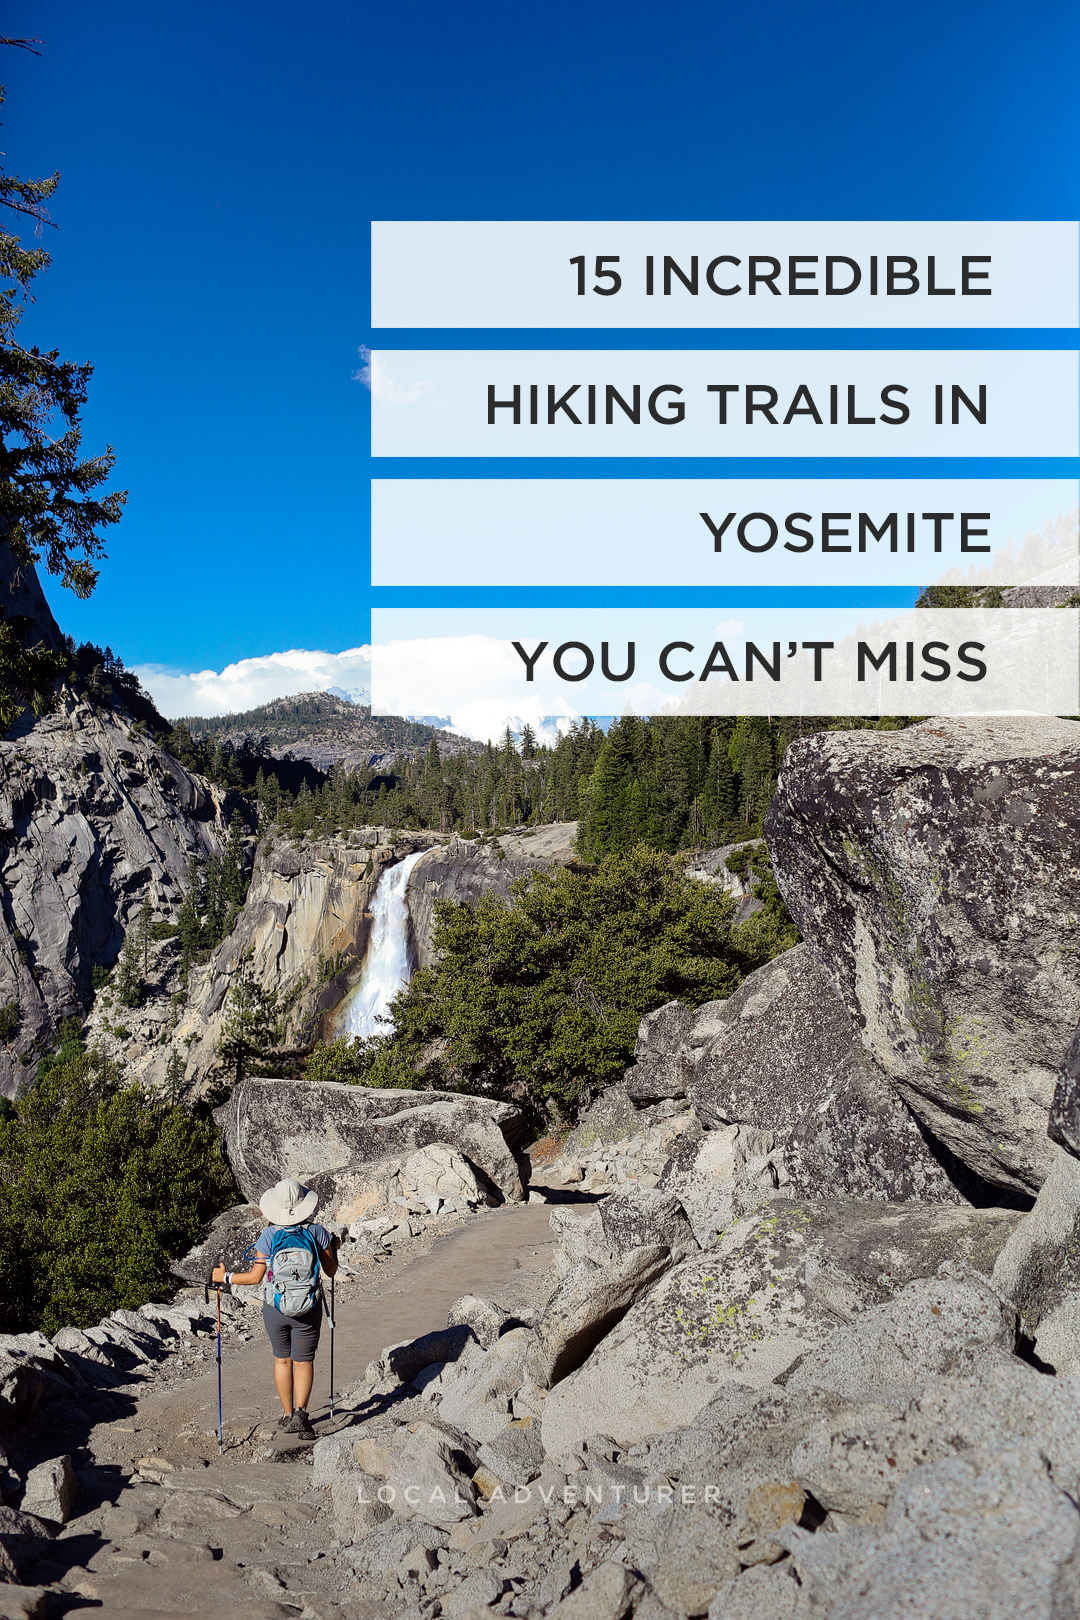 Traveling to Yosemite National Park? Take a look at these 11 best hikes in Yosemite National Park. These Yosemite hiking trails are also some of the best hiking trails in California and the US that you'll want to add to your hiking bucket lists. They take you to some of the most beautiful places and best views in Yosemite. // Local Adventurer #localadventurer #yosemite #california #nationalpark #visitcalifornia #visitca #findyourpark